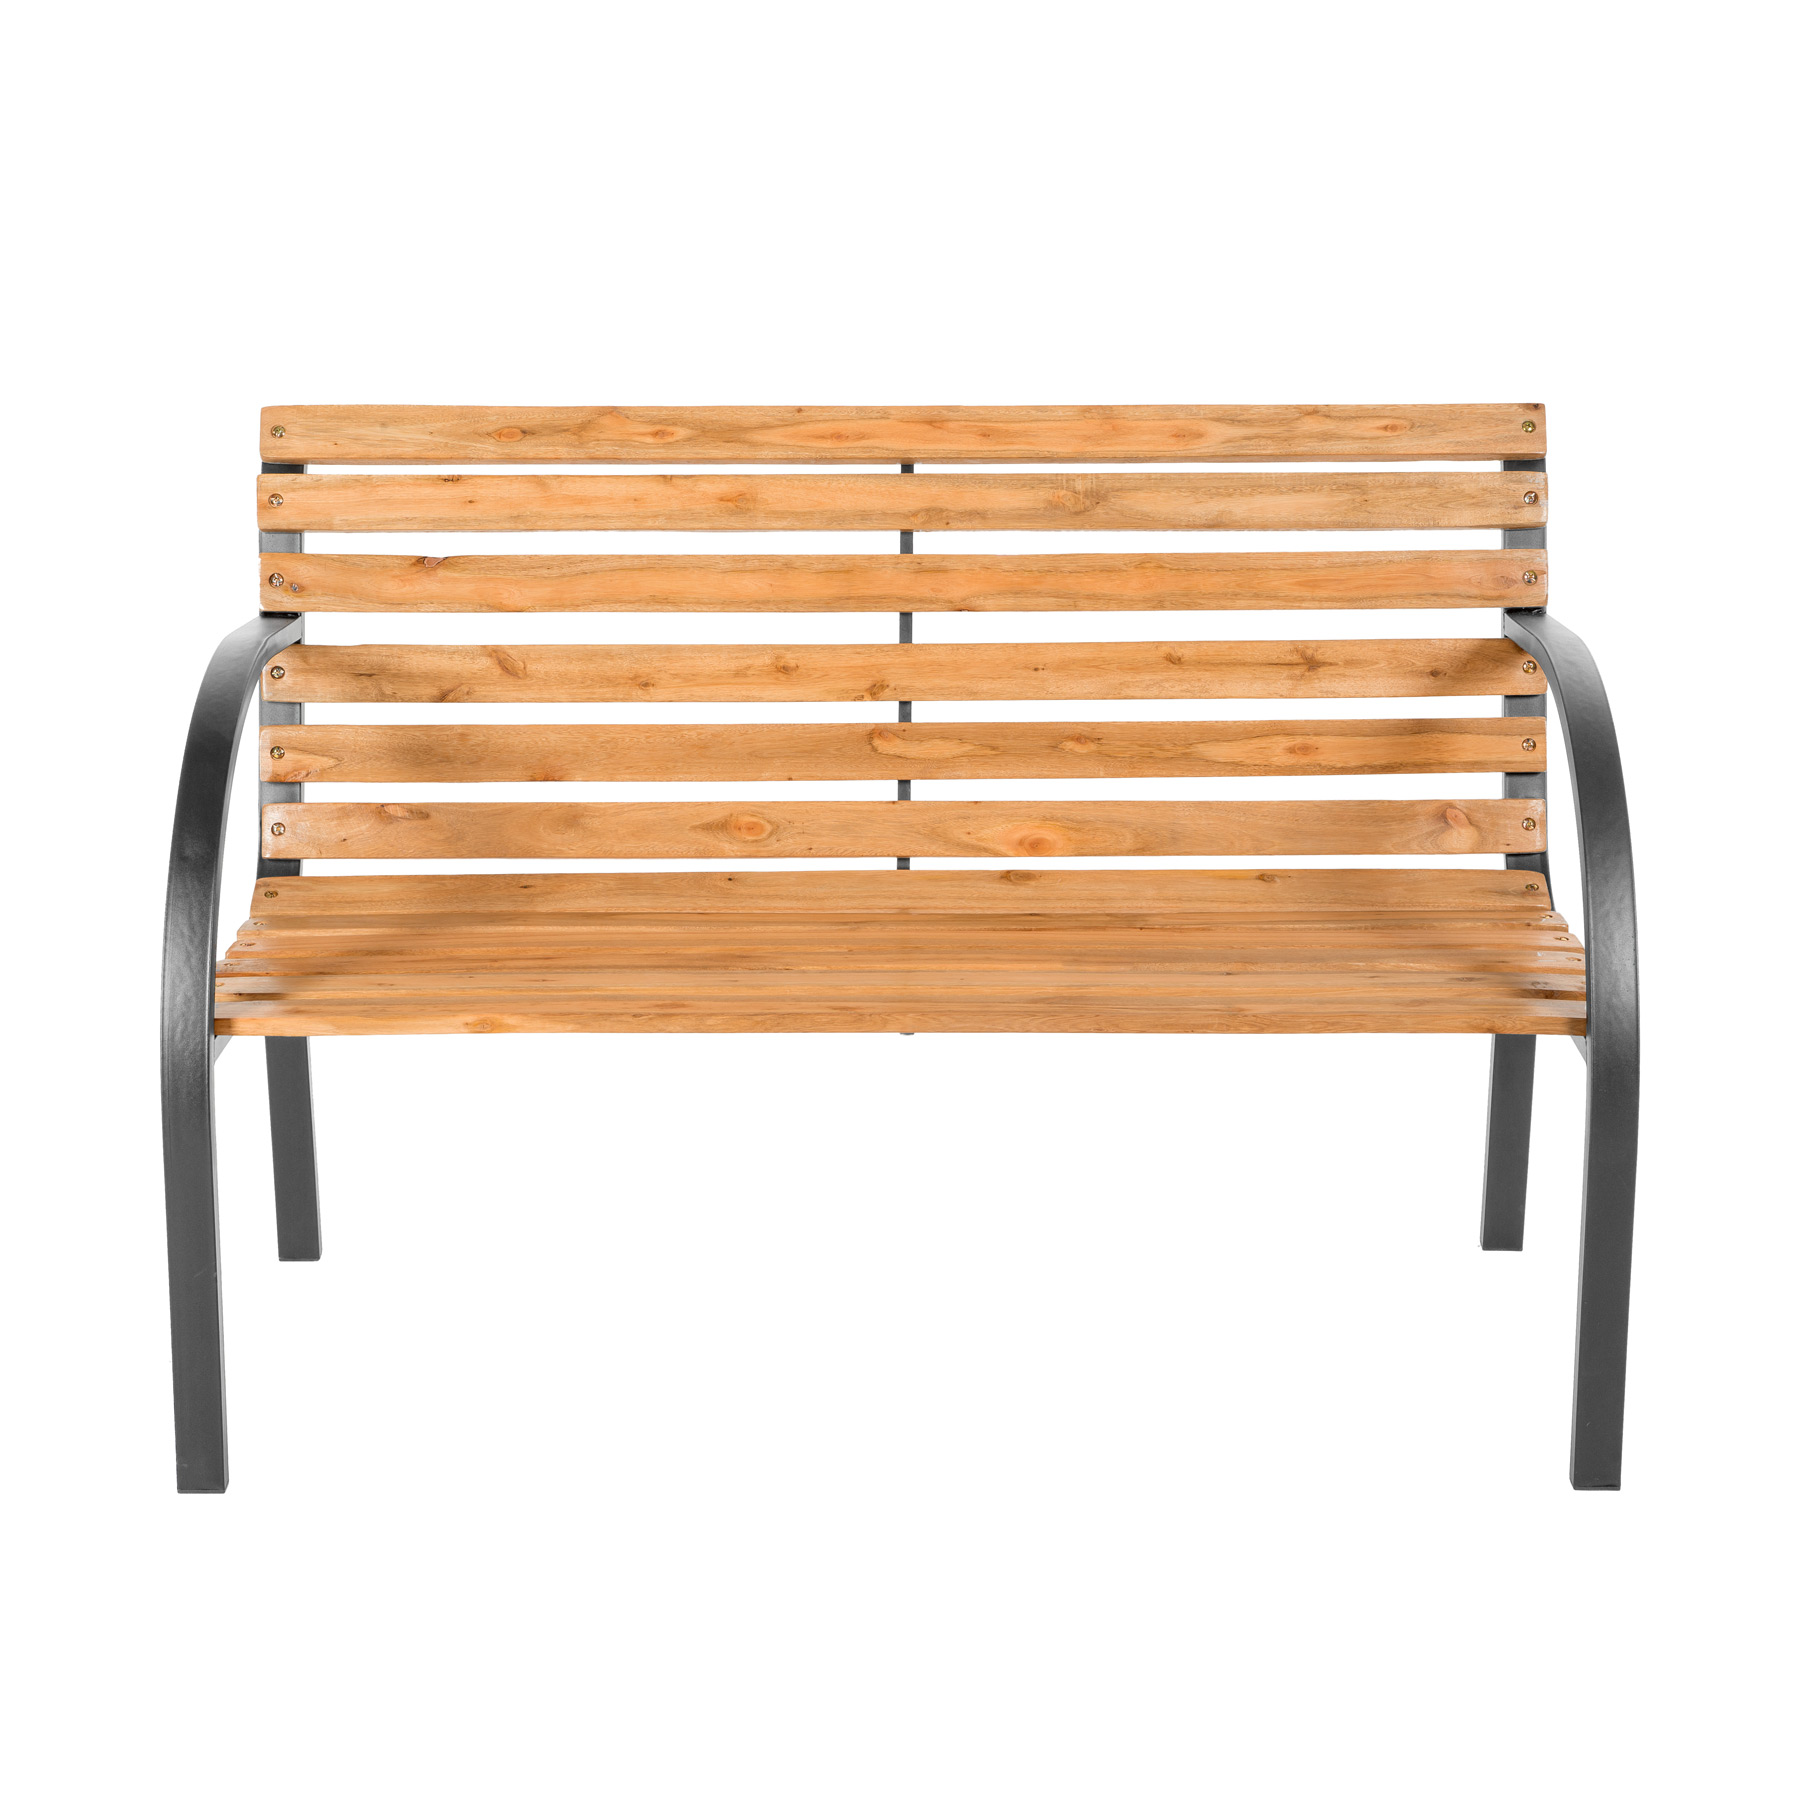 wooden garden bench eucalyptus wood seat with metal legs. Black Bedroom Furniture Sets. Home Design Ideas